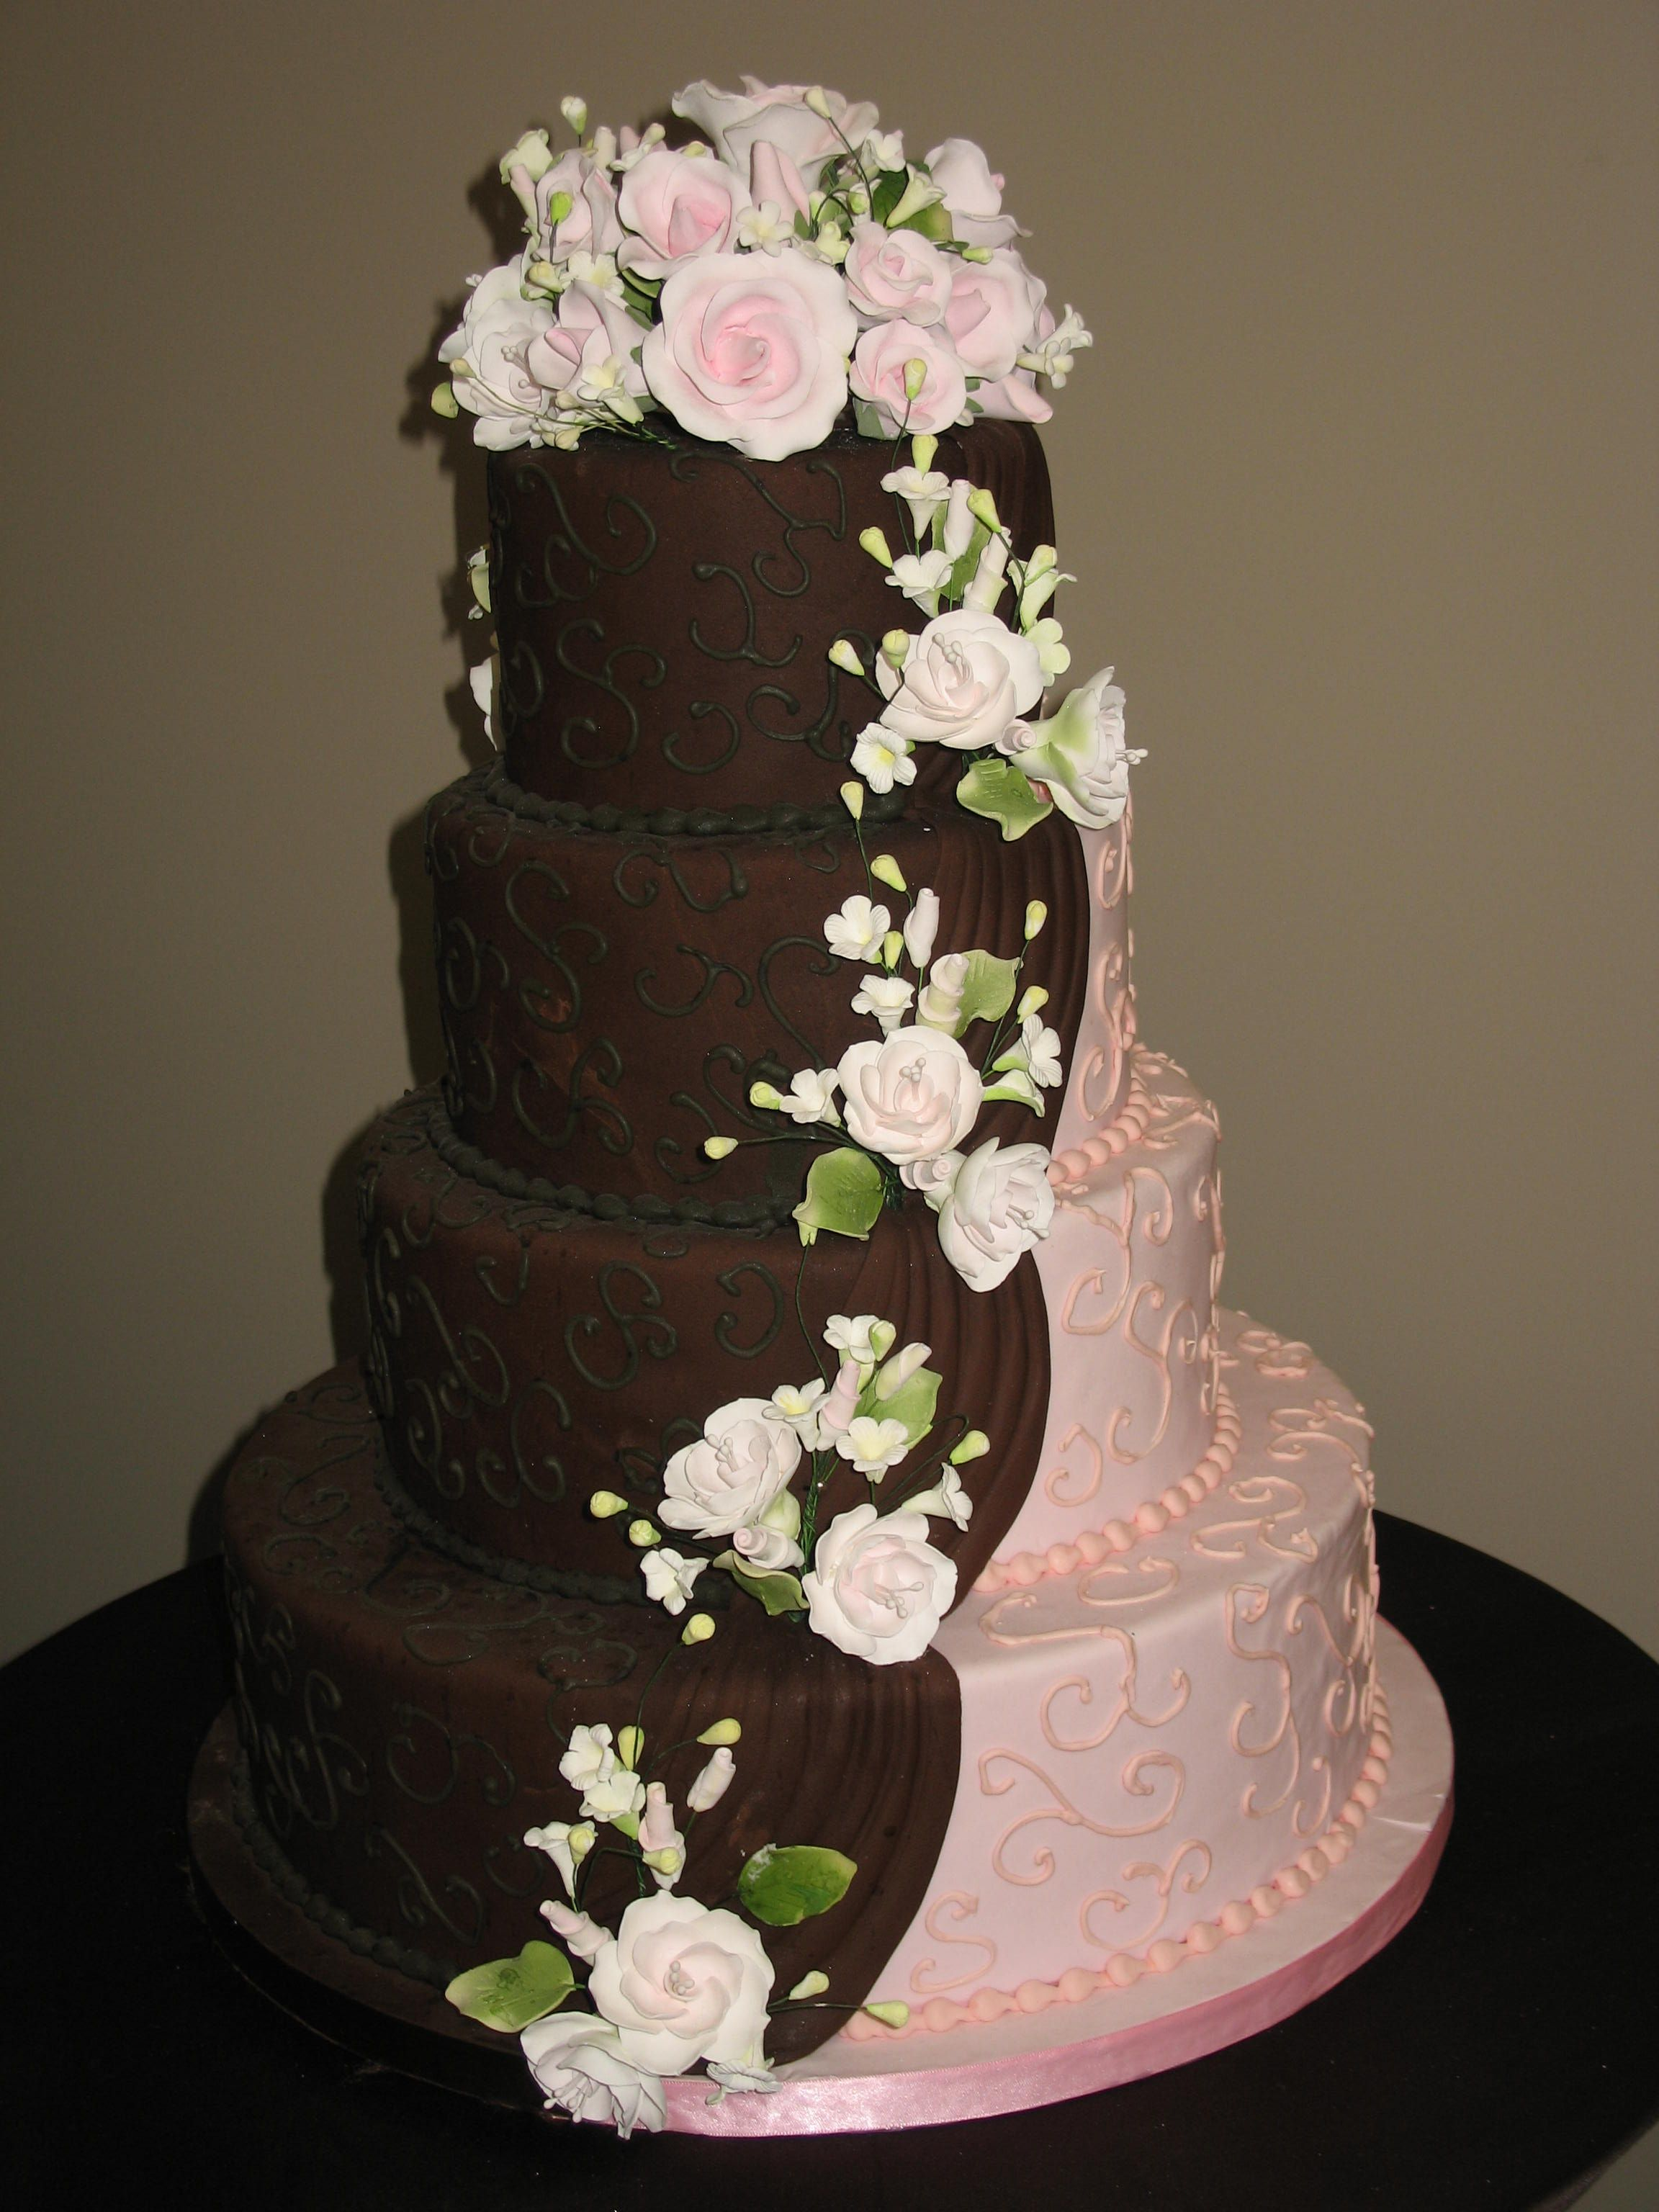 Pink And Brown Wedding Cake Www.cheesecakeetc.biz Wedding Cakes Charlotte NC